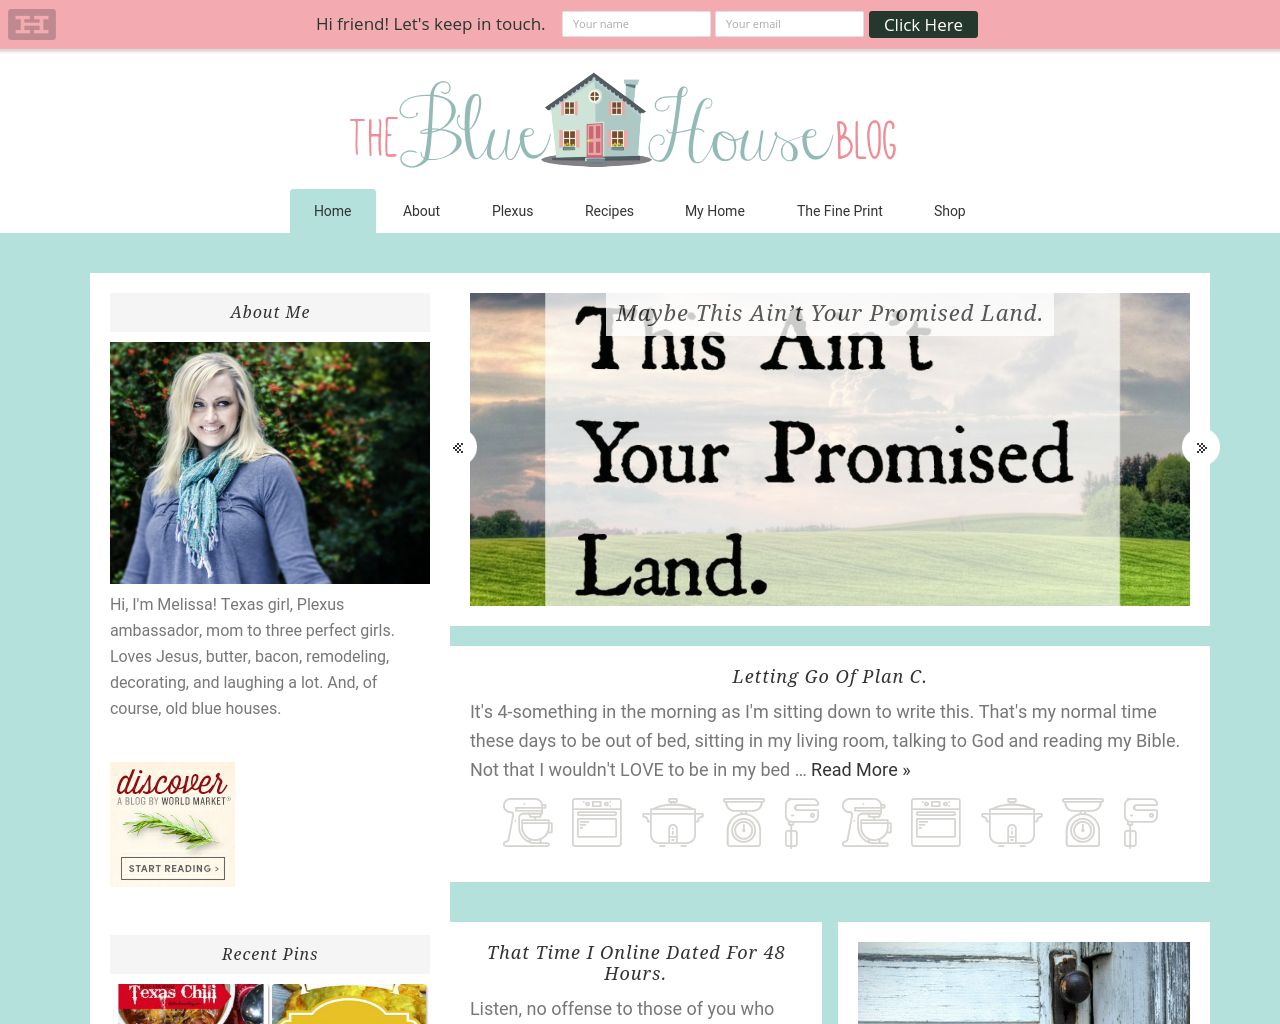 The-Blue-House-Blog-Advertising-Reviews-Pricing